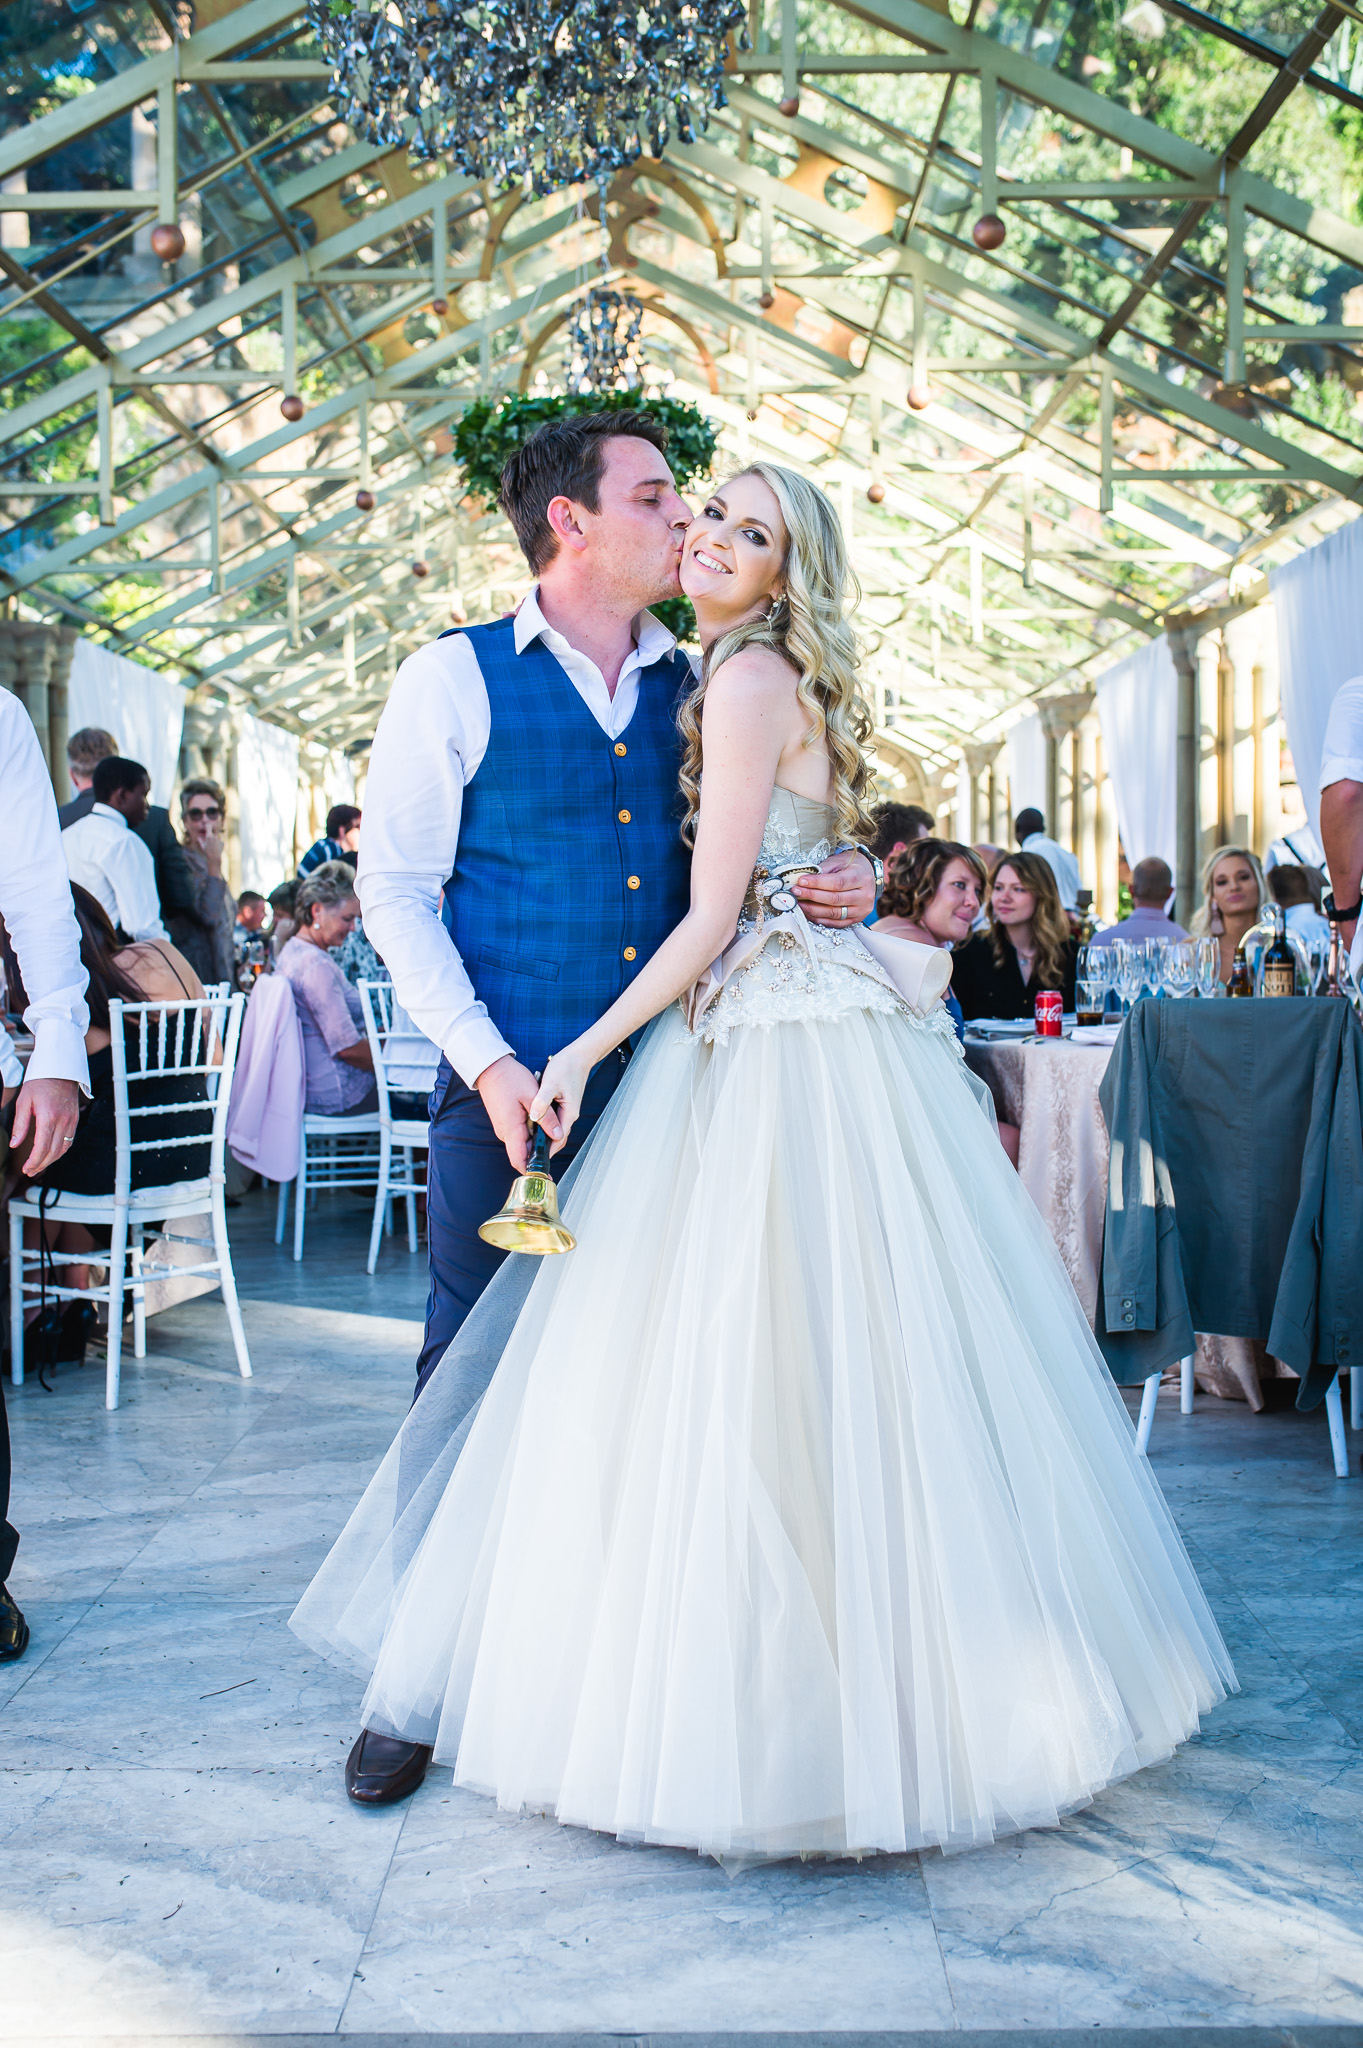 George and Charlene - Shepstone Gardens - Sneak Peak (33 of 49).jpg